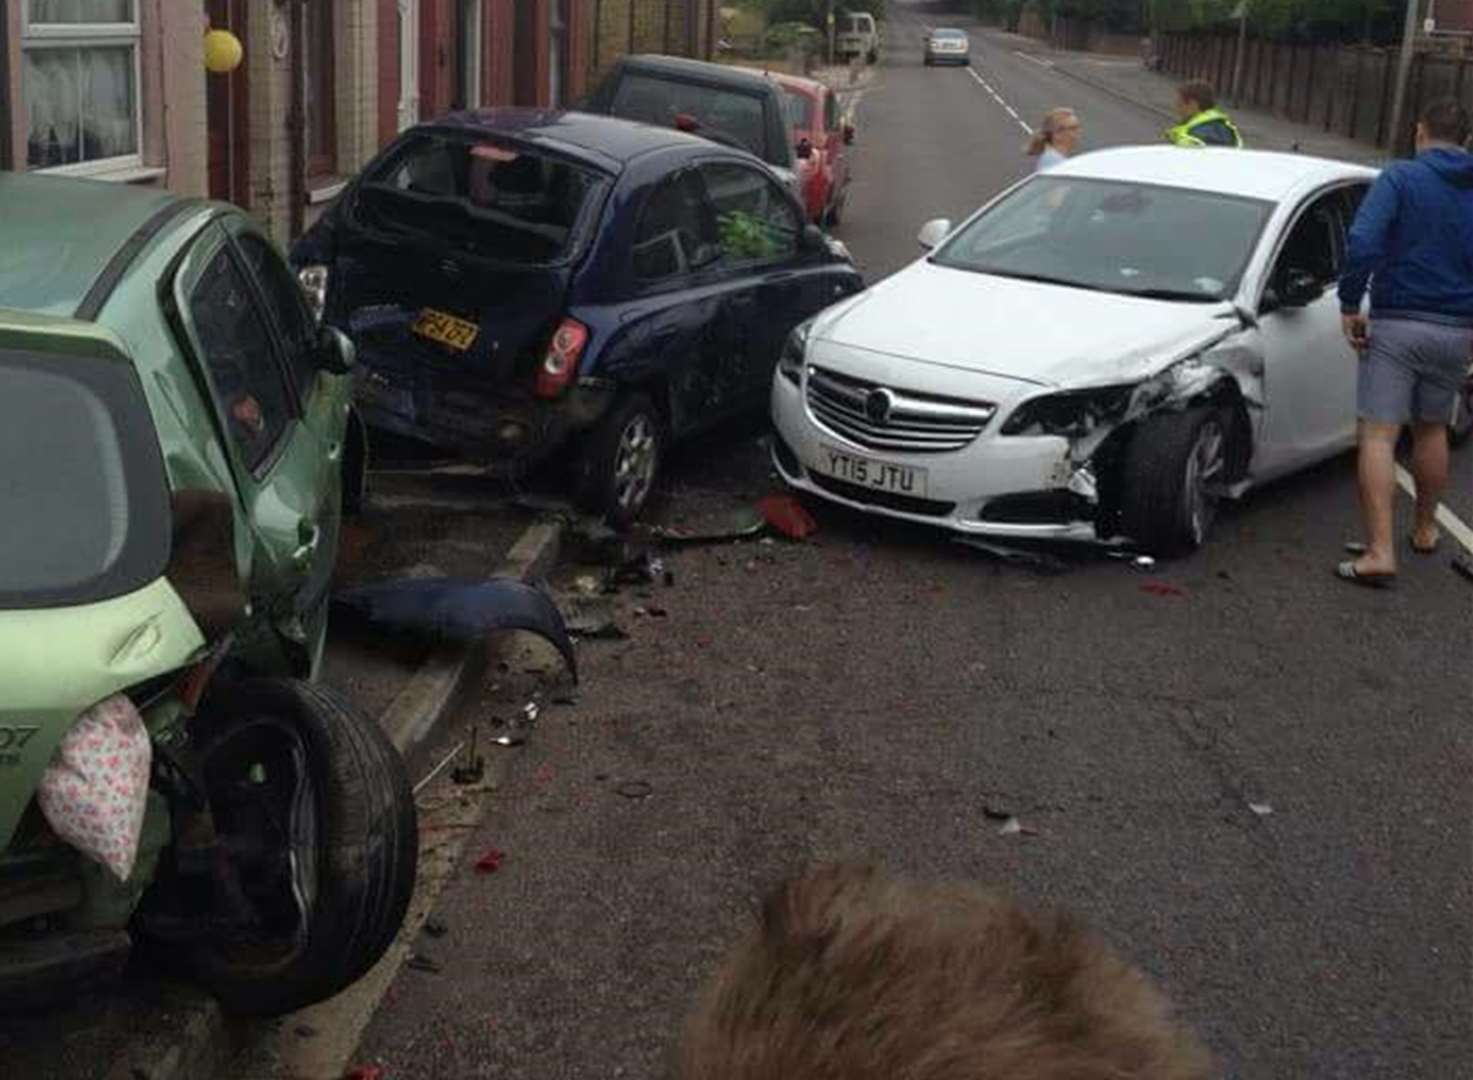 100mph driver jailed after smashing into cars